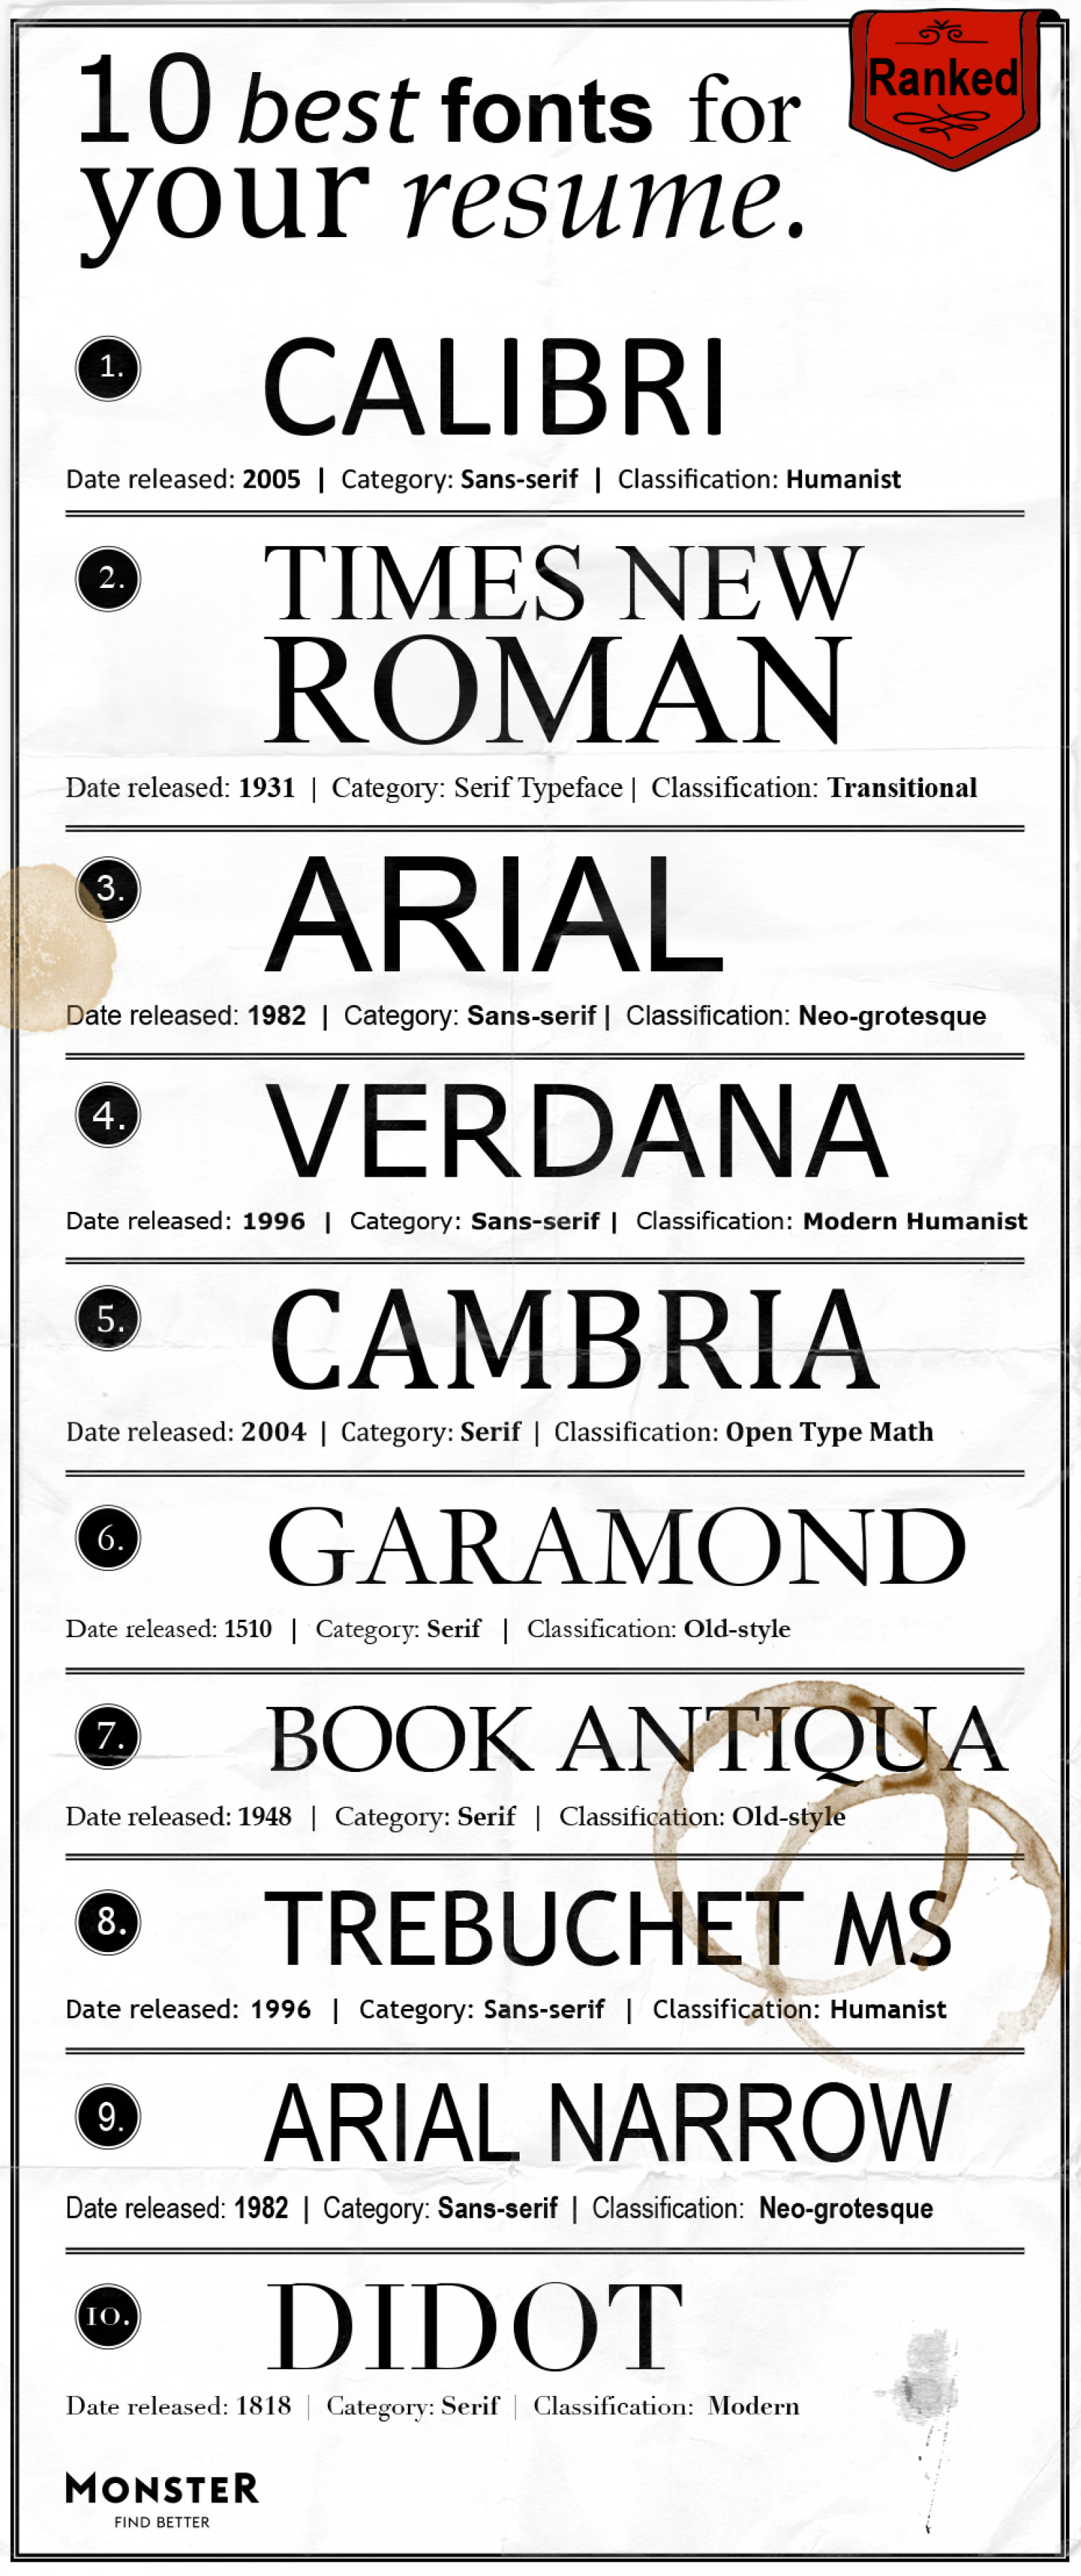 The best fonts for your resume, ranked | Visual.ly